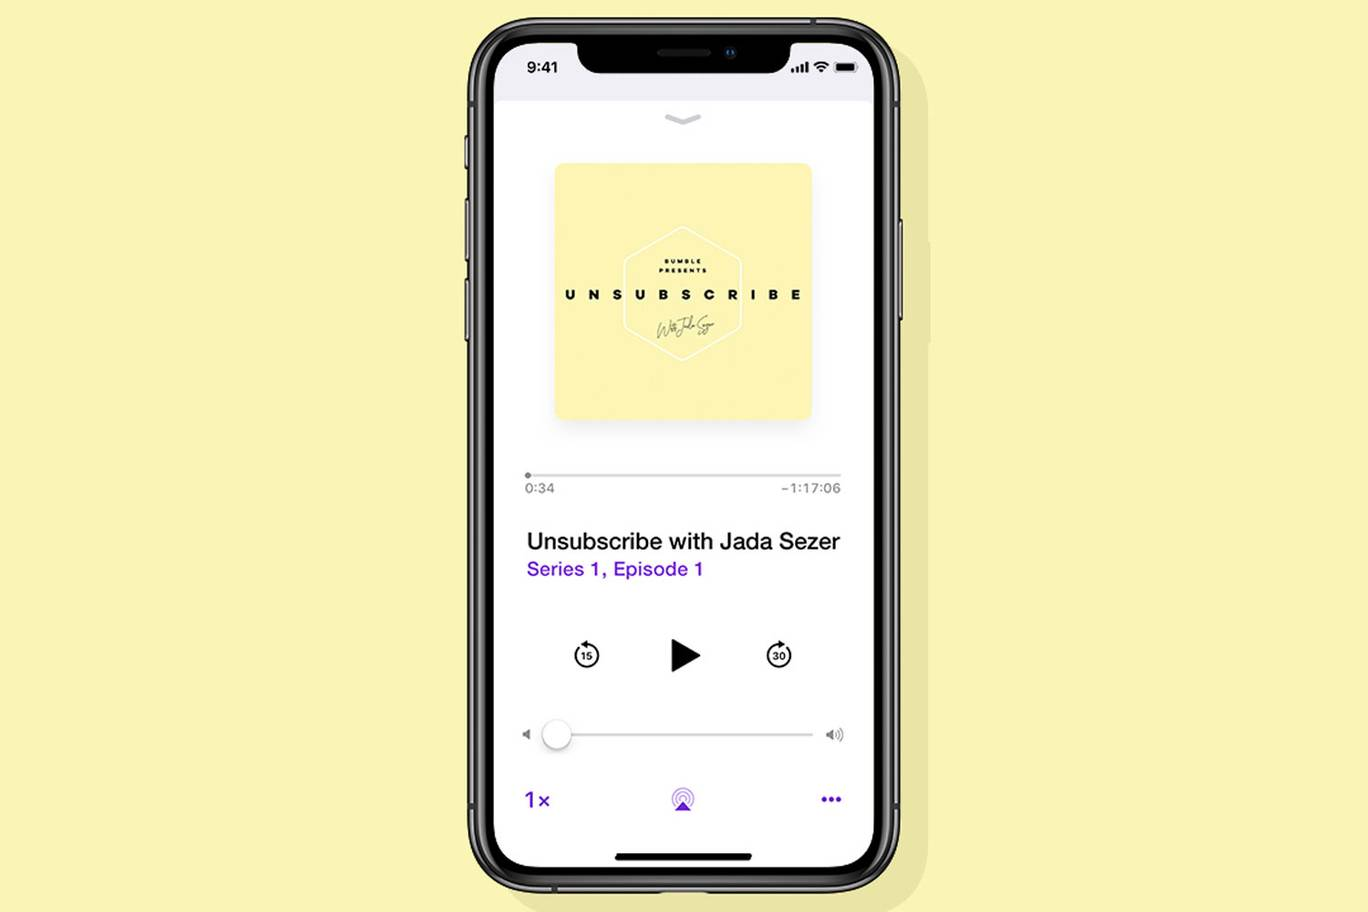 Bumble Starts Podcast Focused on Female Empowerment